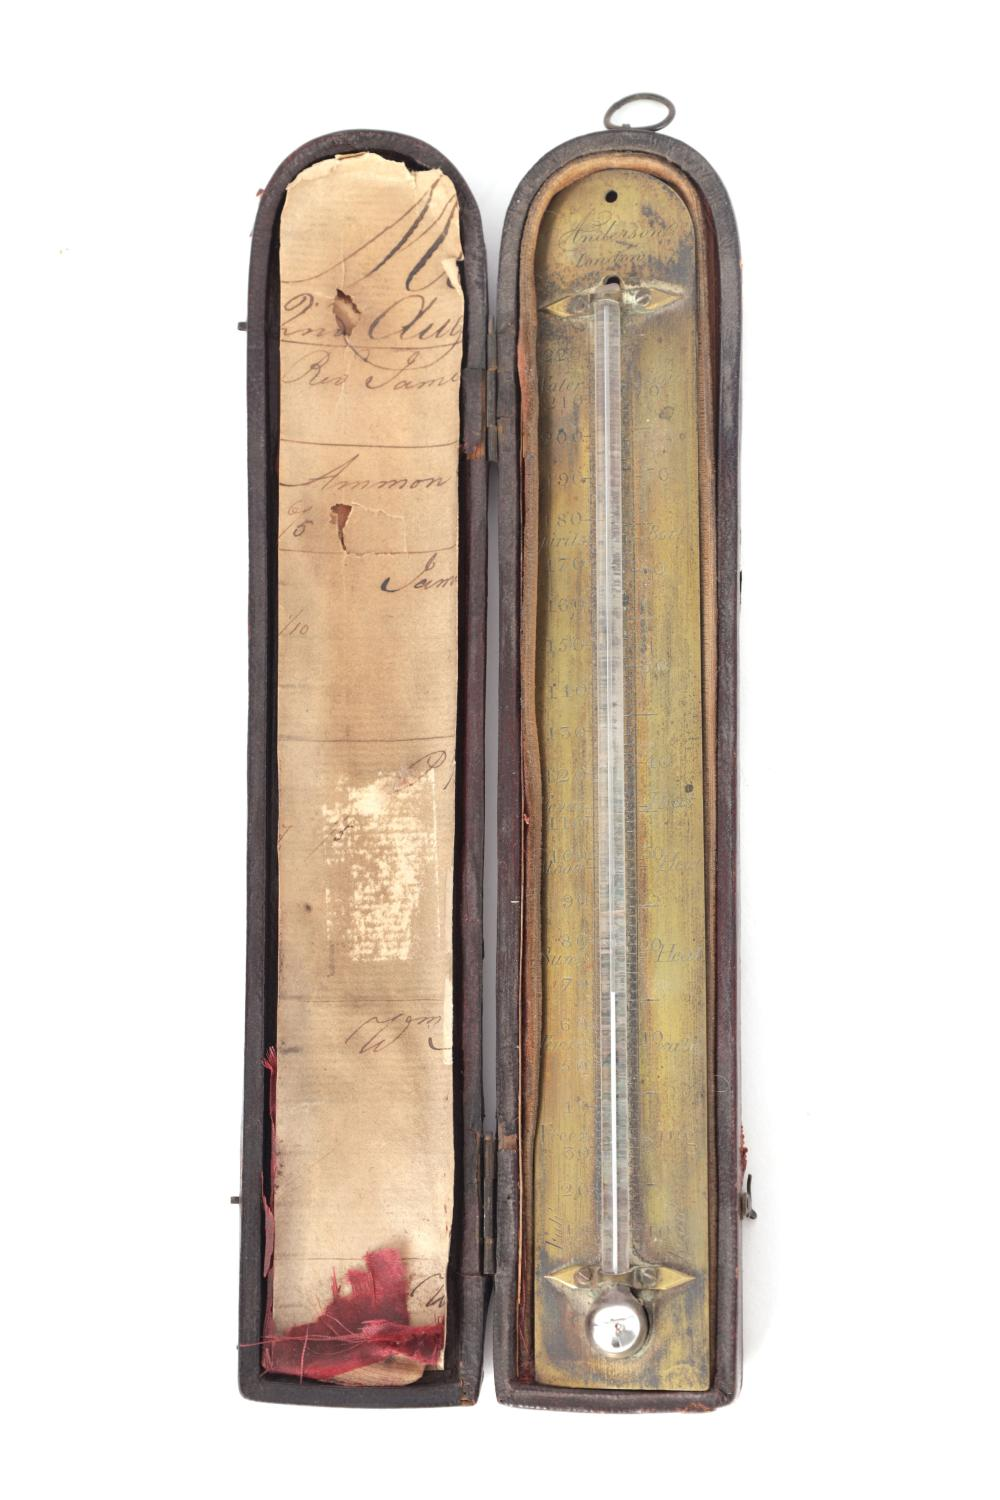 ANDERSON, LONDON. A GEORGE III CASED BRASS ENGRAVED POCKET THERMOMETER